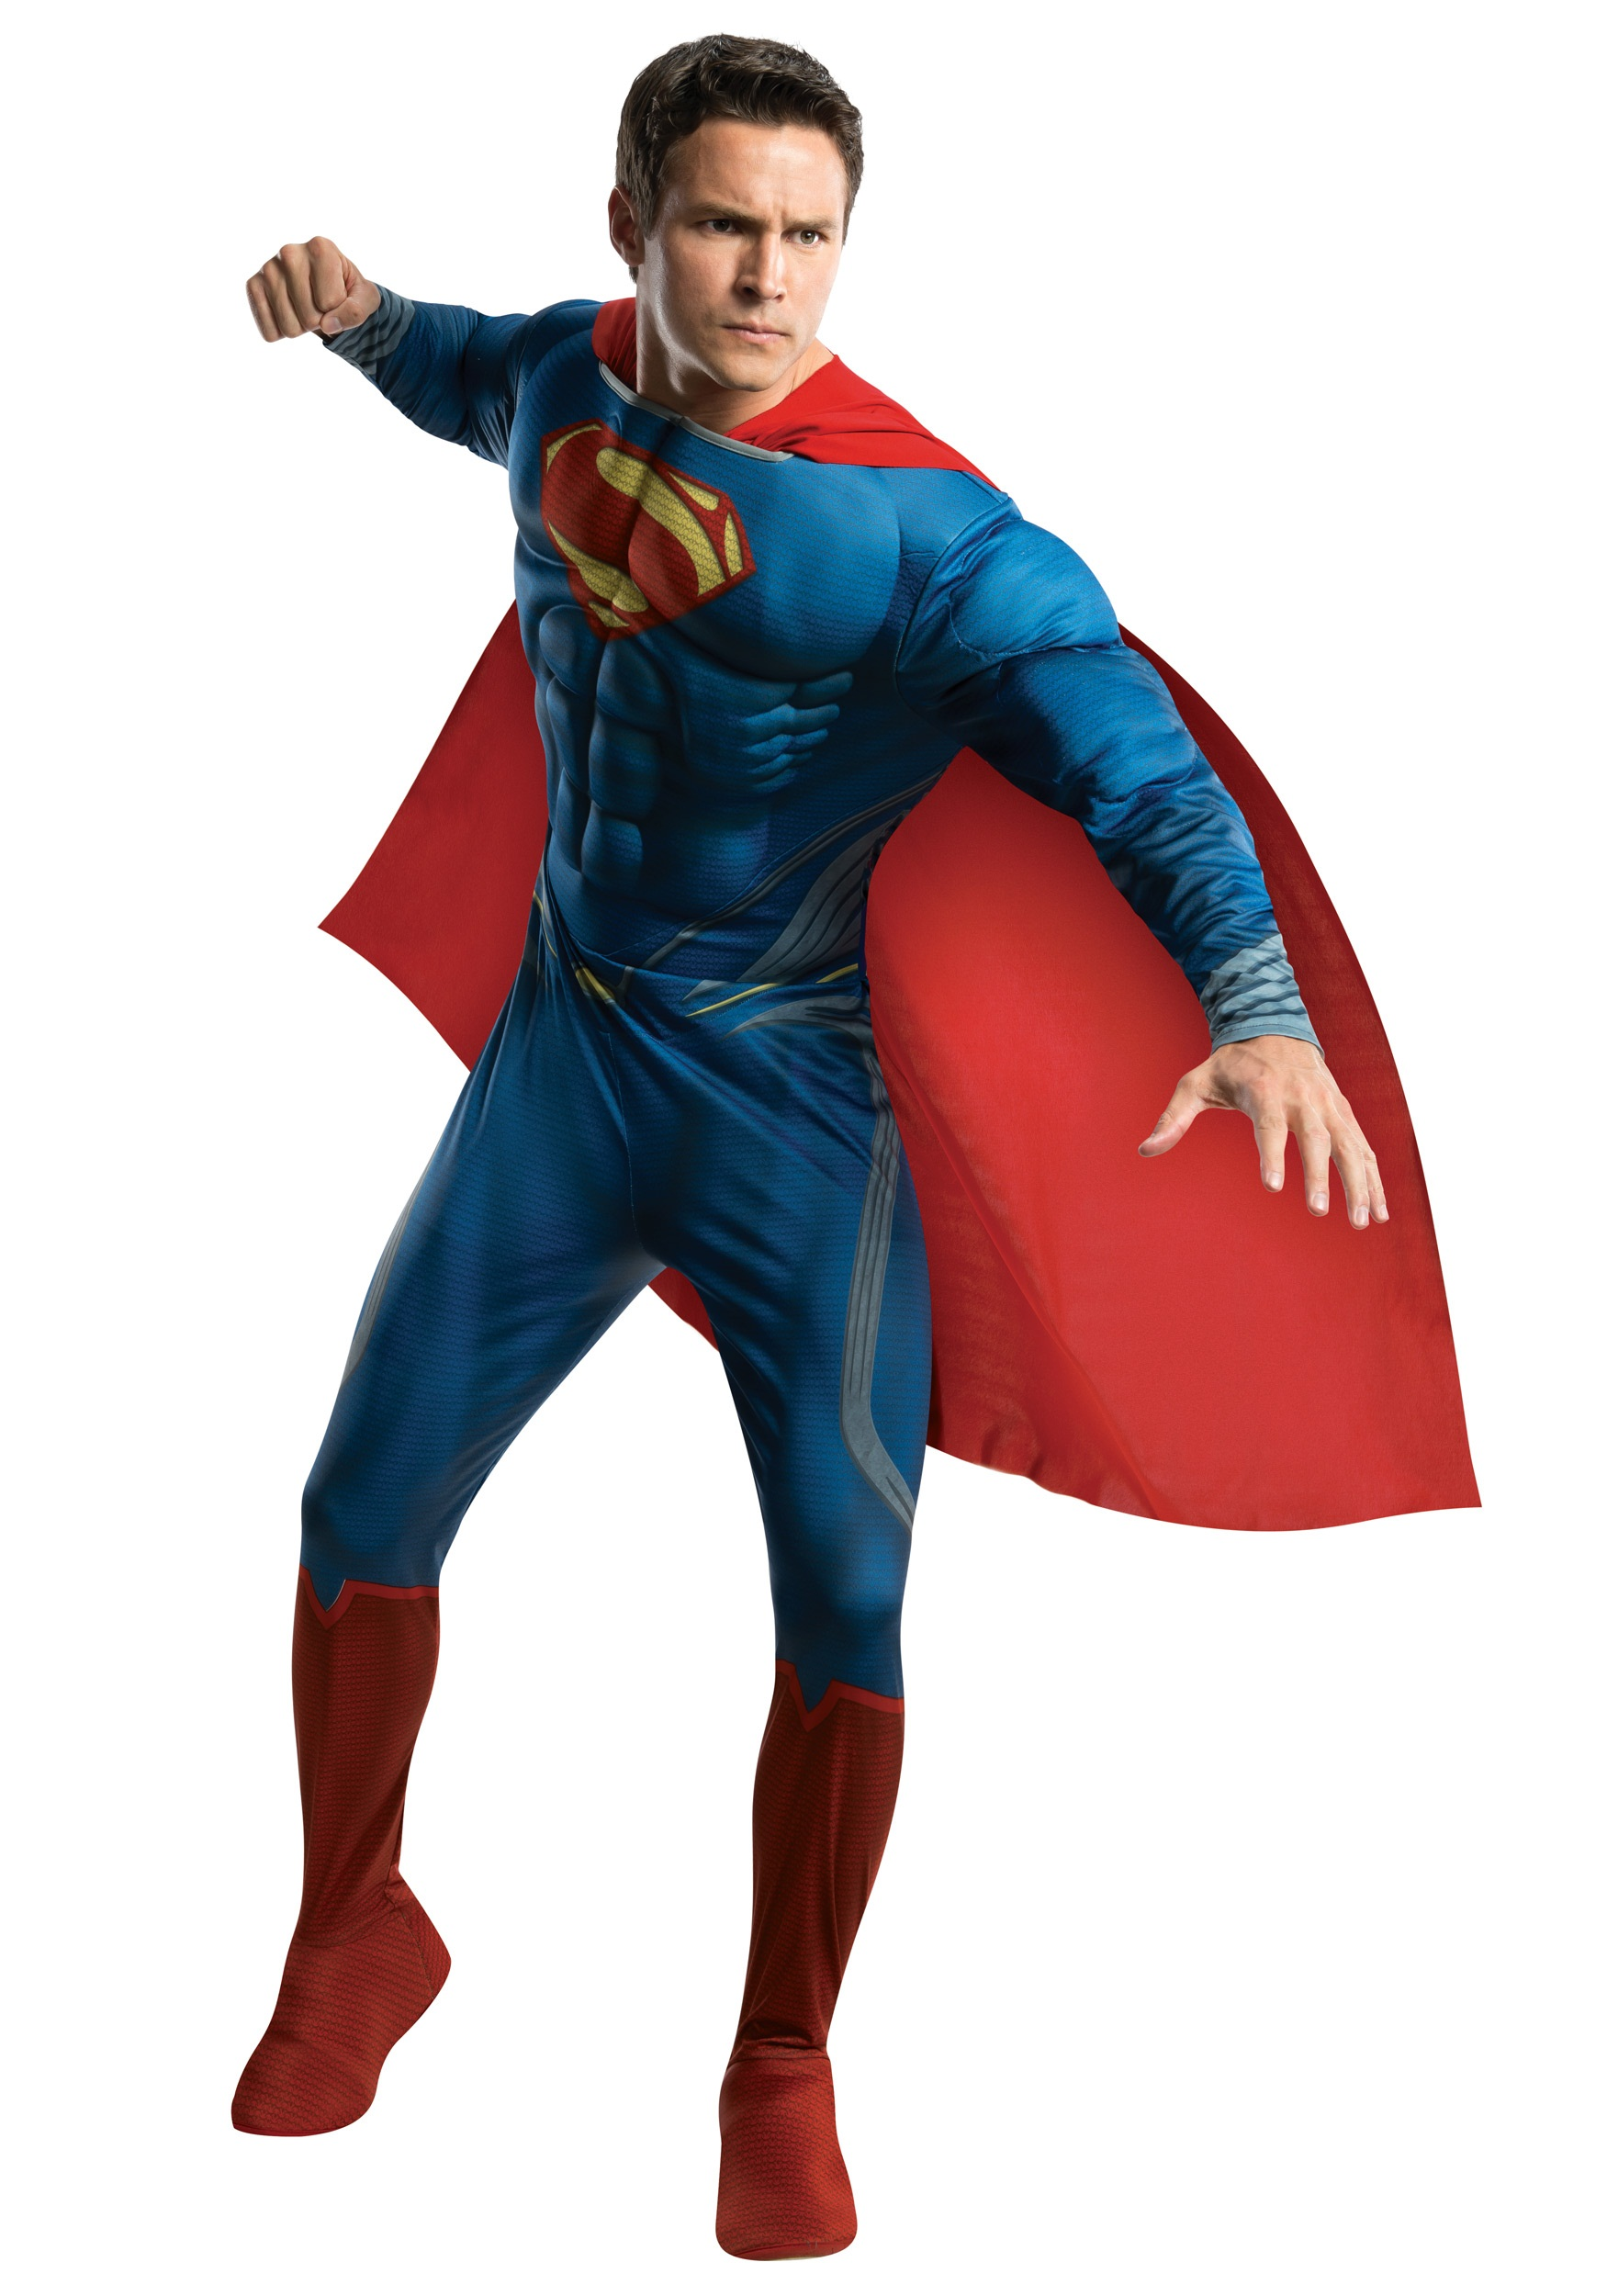 Male Superhero Costumes - Adult Men's Superhero Halloween Costumes